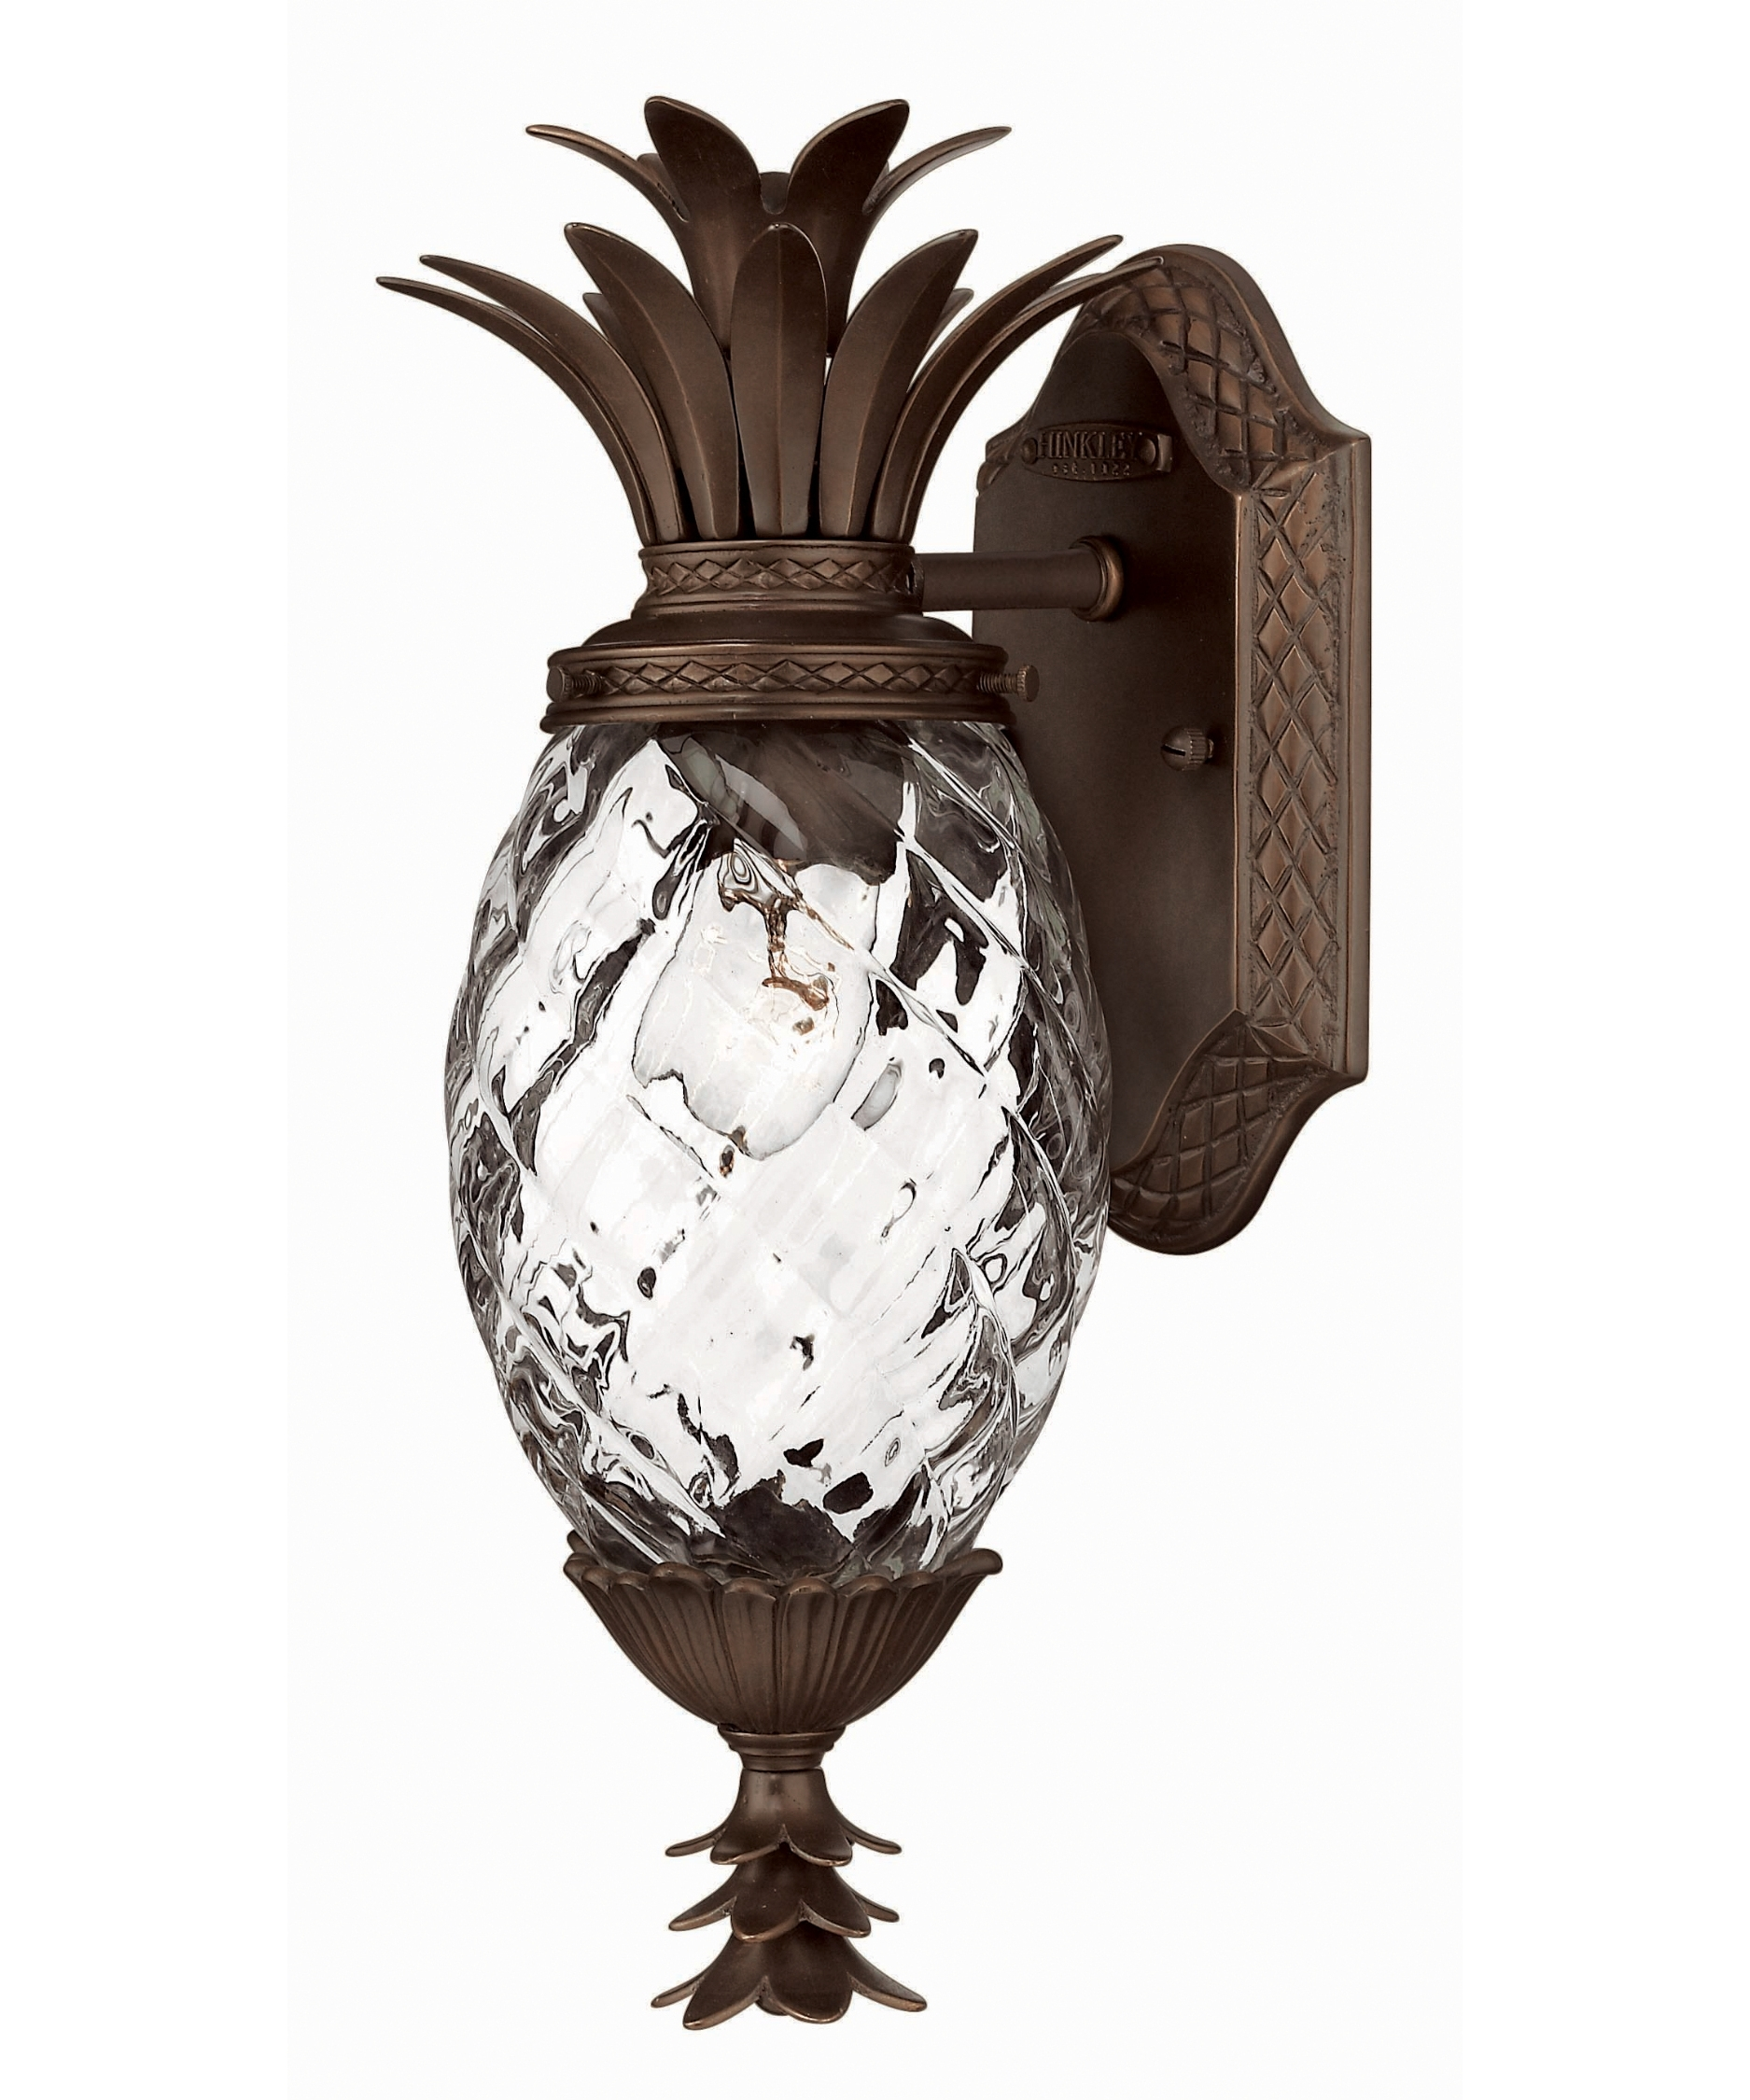 Pineapple Outdoor Wall Lights Inside Most Recently Released Fresh Perfect Pineapple Outdoor Wall Lights # (View 5 of 20)